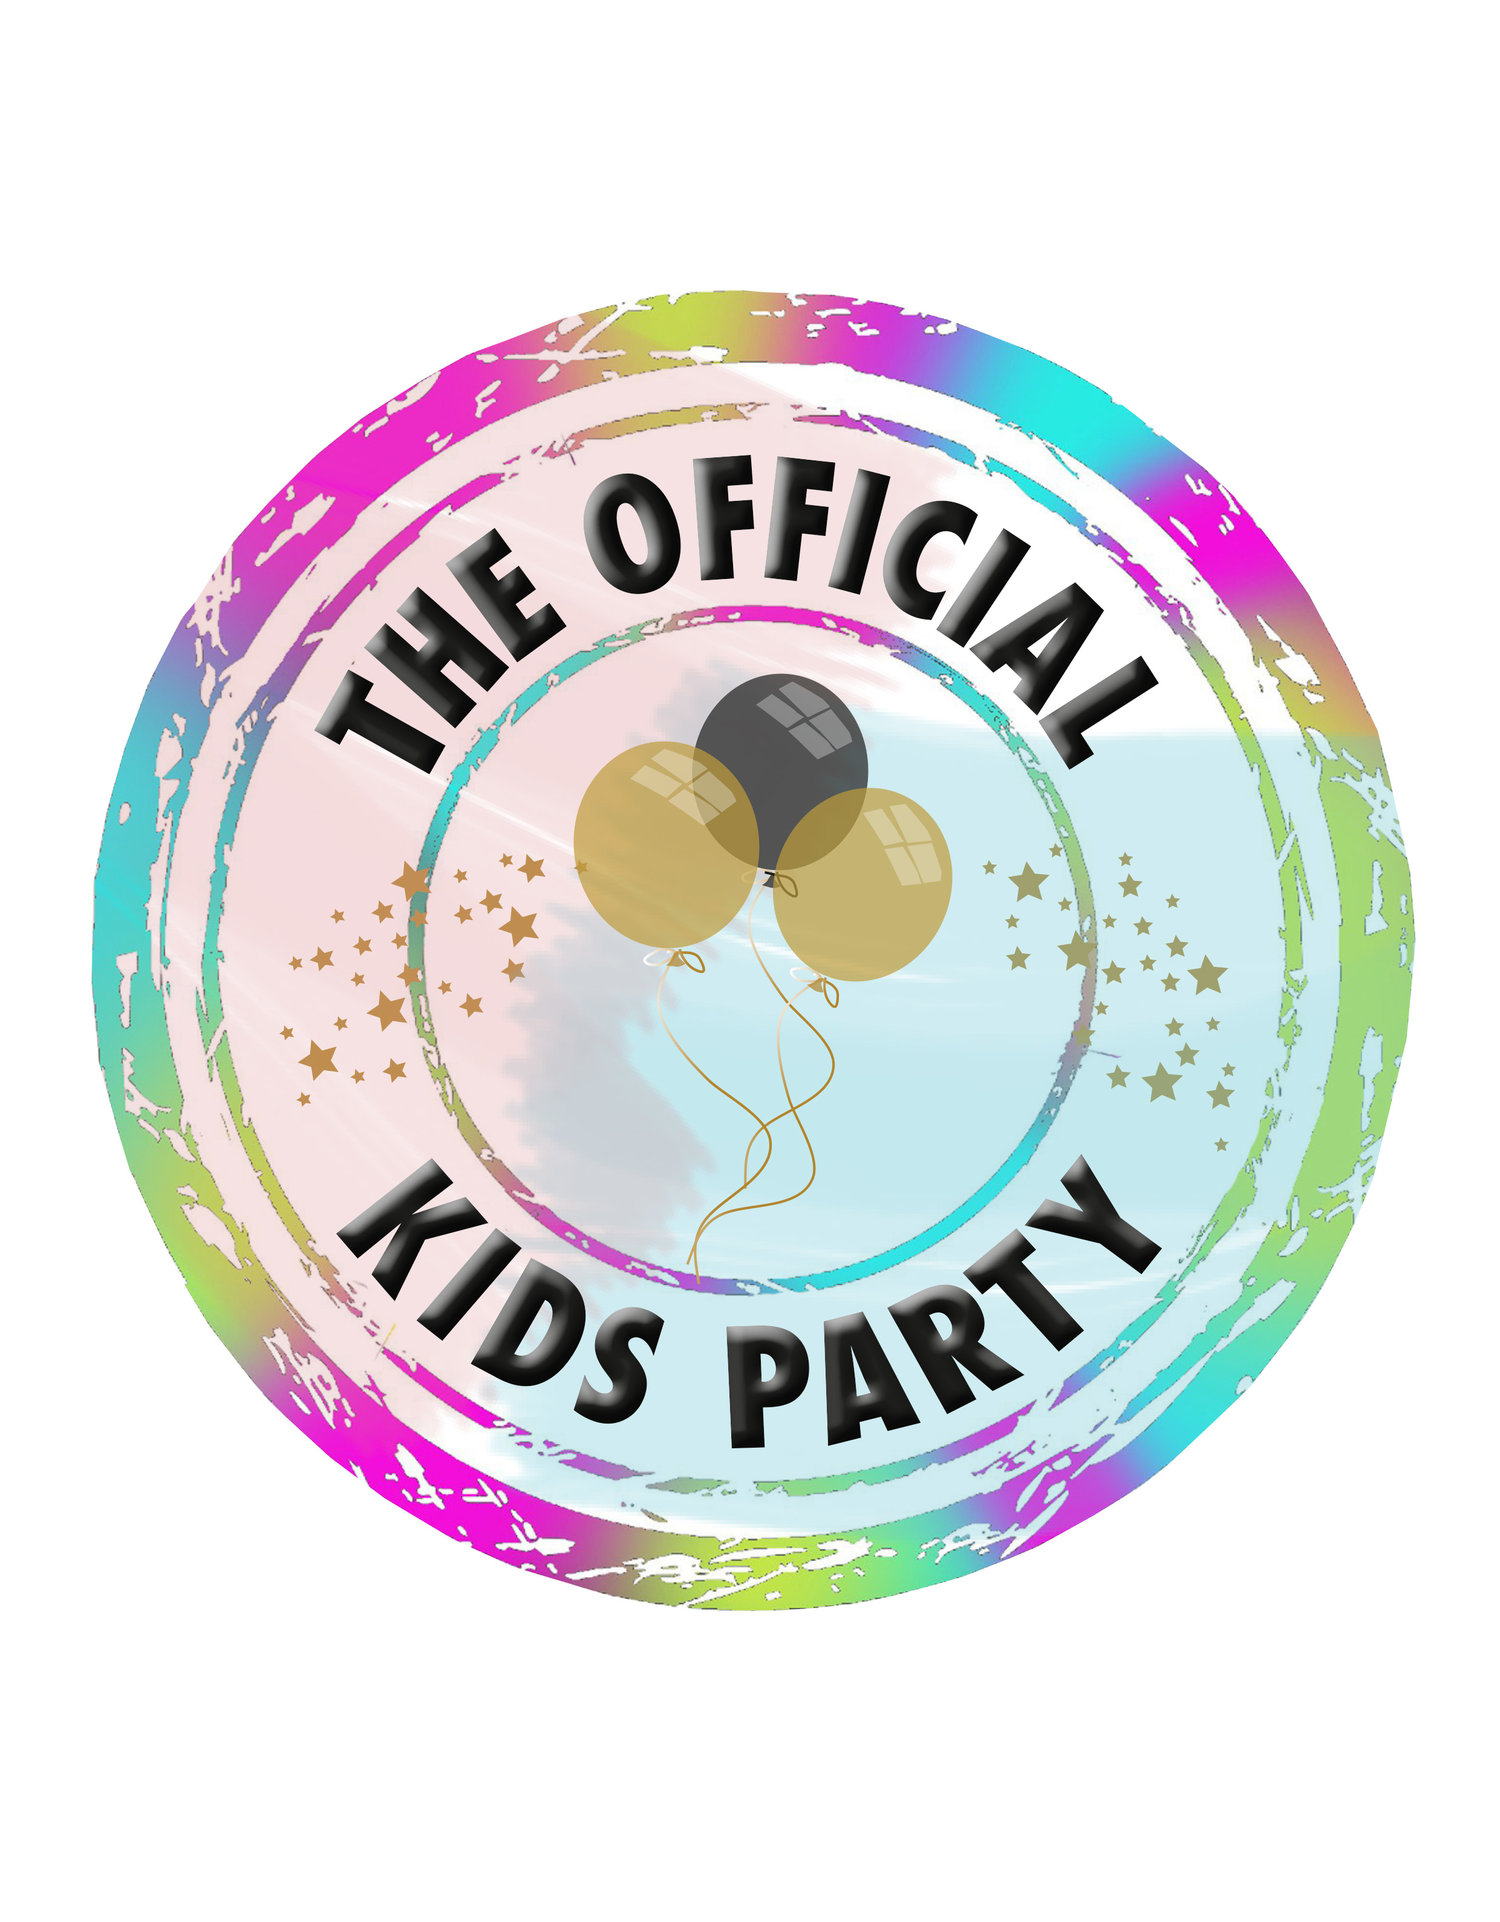 The Official Kids Party